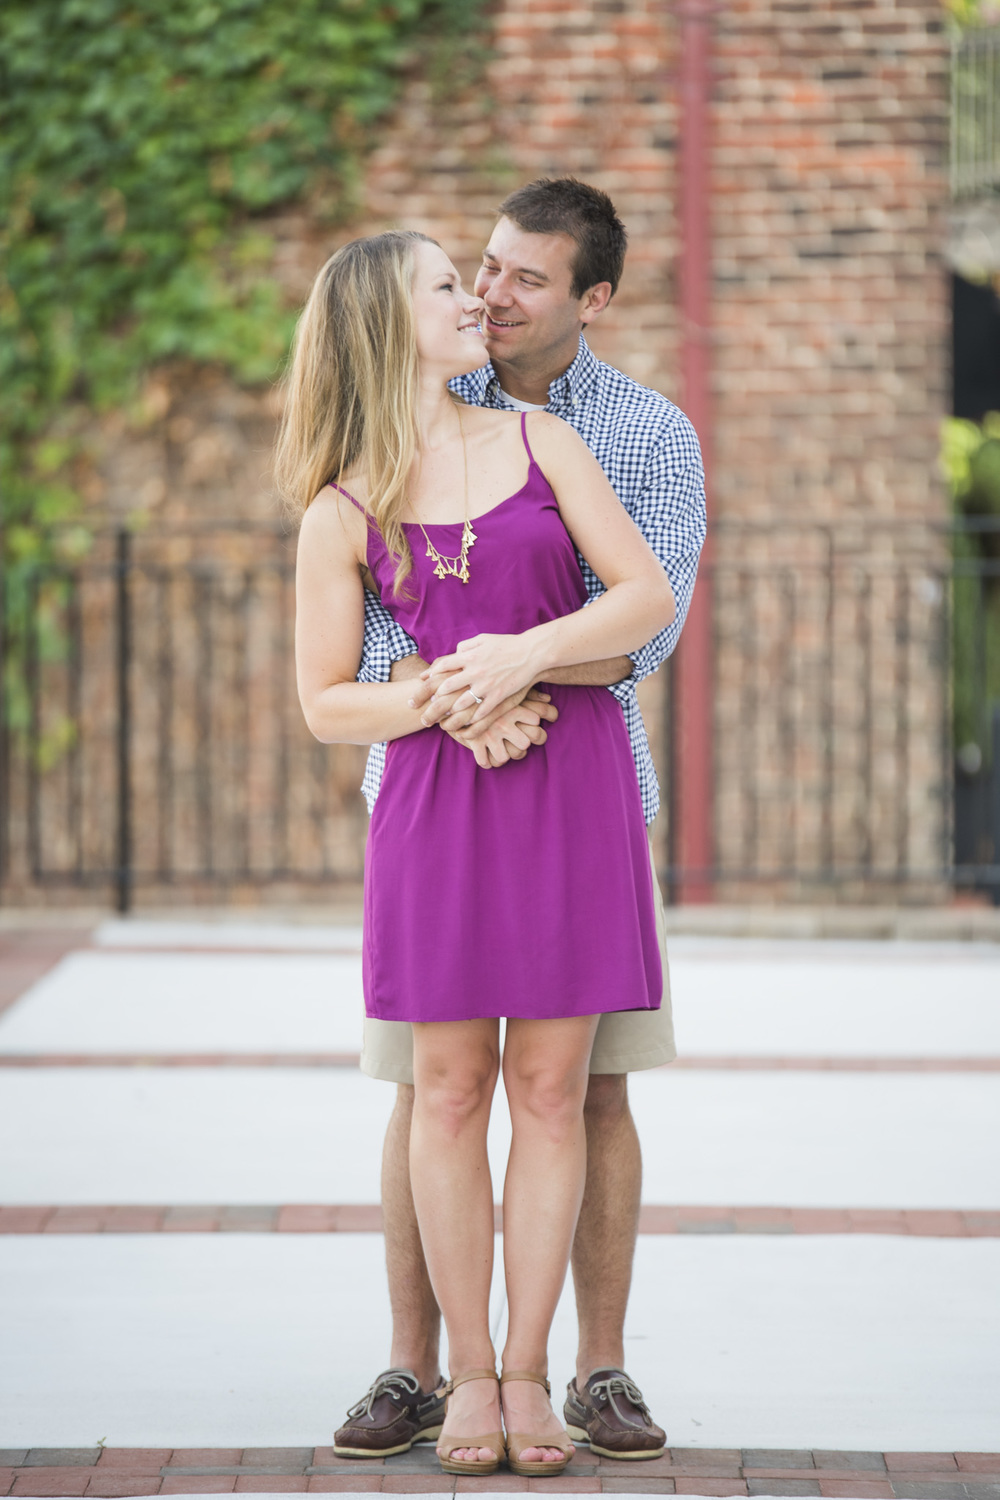 Downtown_Lynchburg_VA_craddock_Terry_Water_Fountain_Engagement_Session_Photos260.jpg